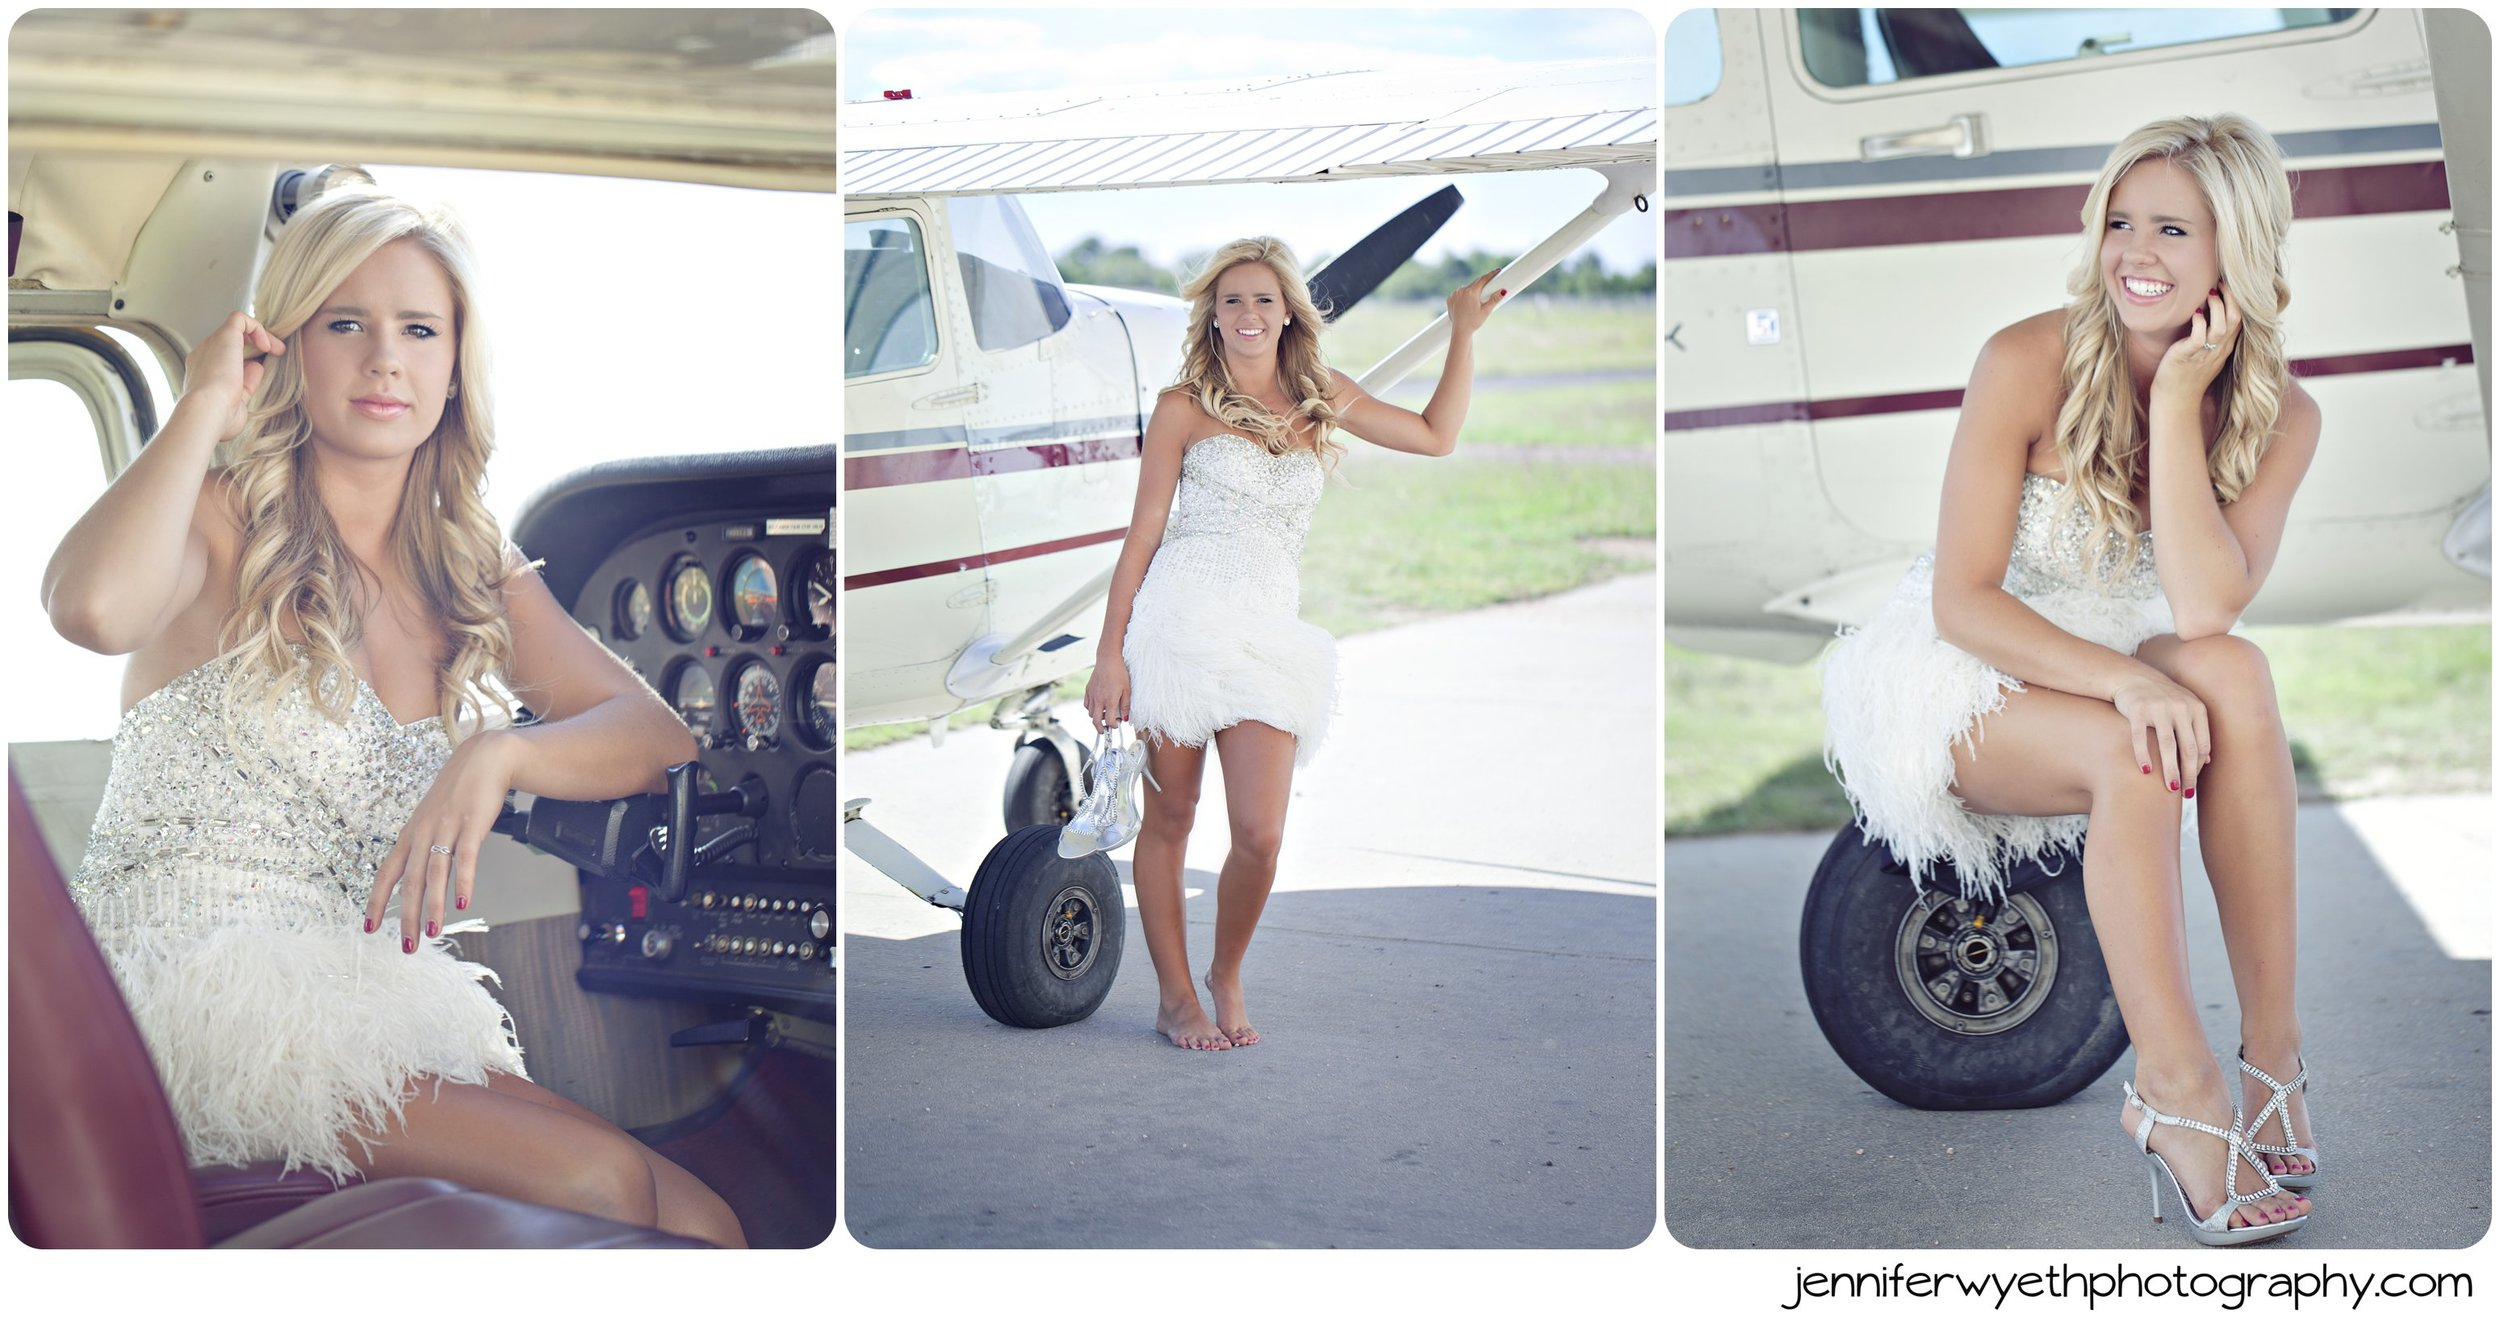 white feathered prom dress wearing girl sits on wheel of an airplane